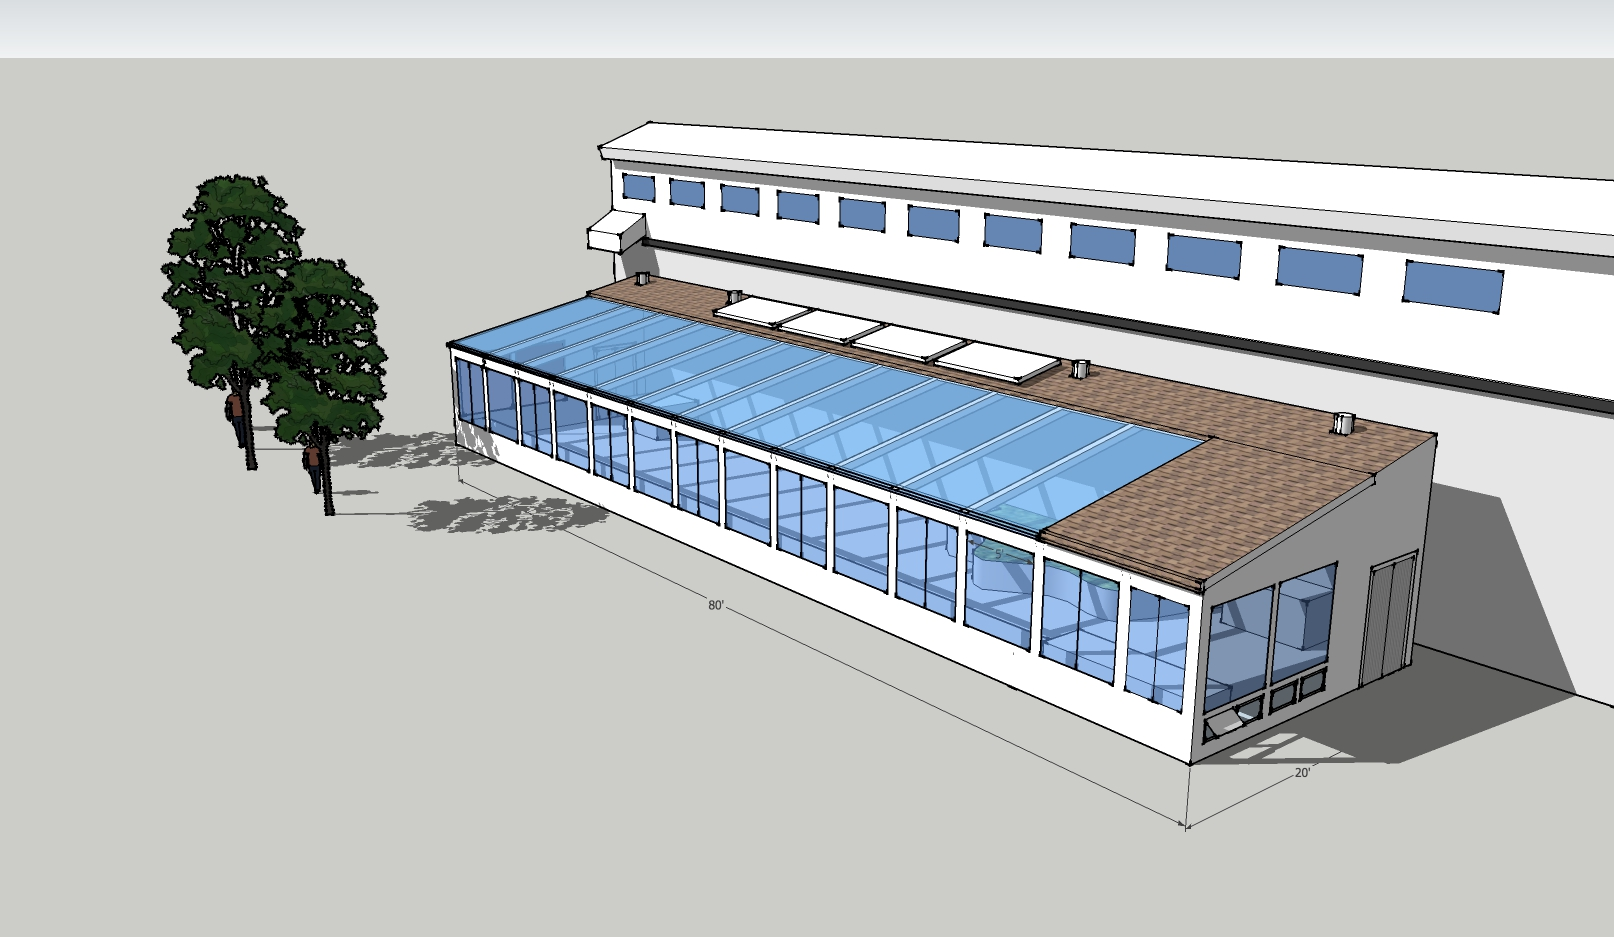 SketchUp Model for an attached solar greenhouse